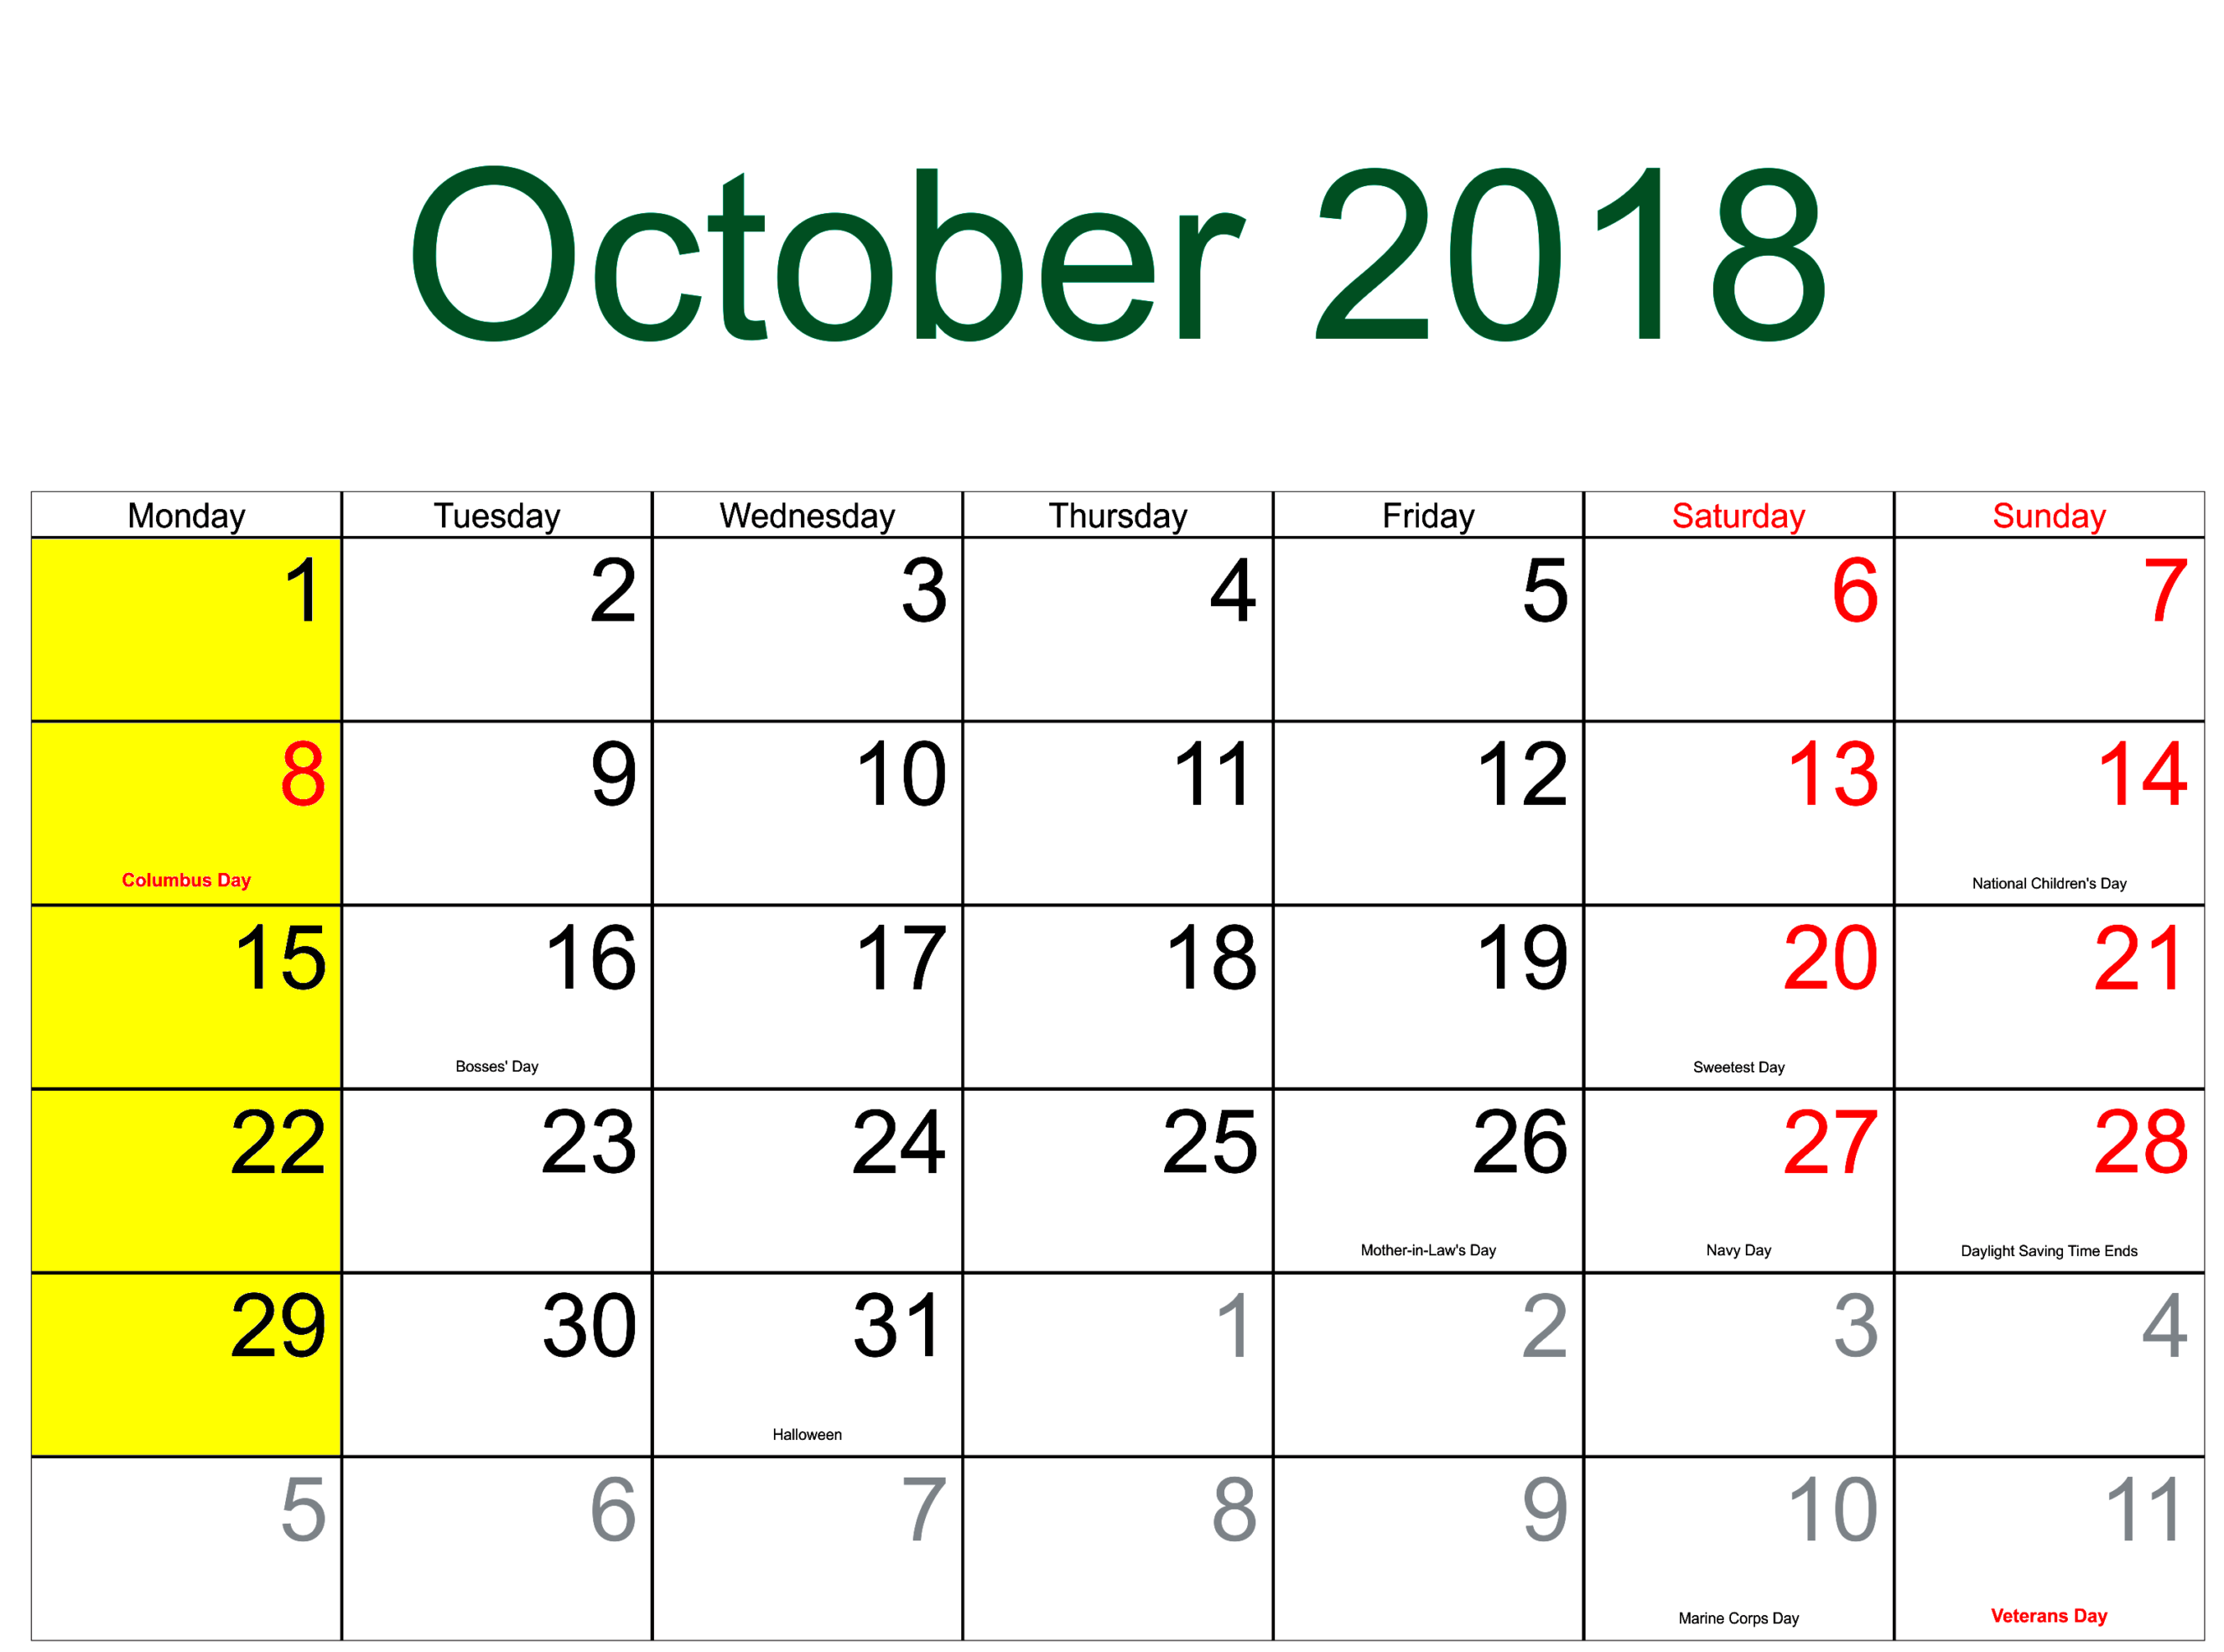 October 2018 USA Holidays Calendar